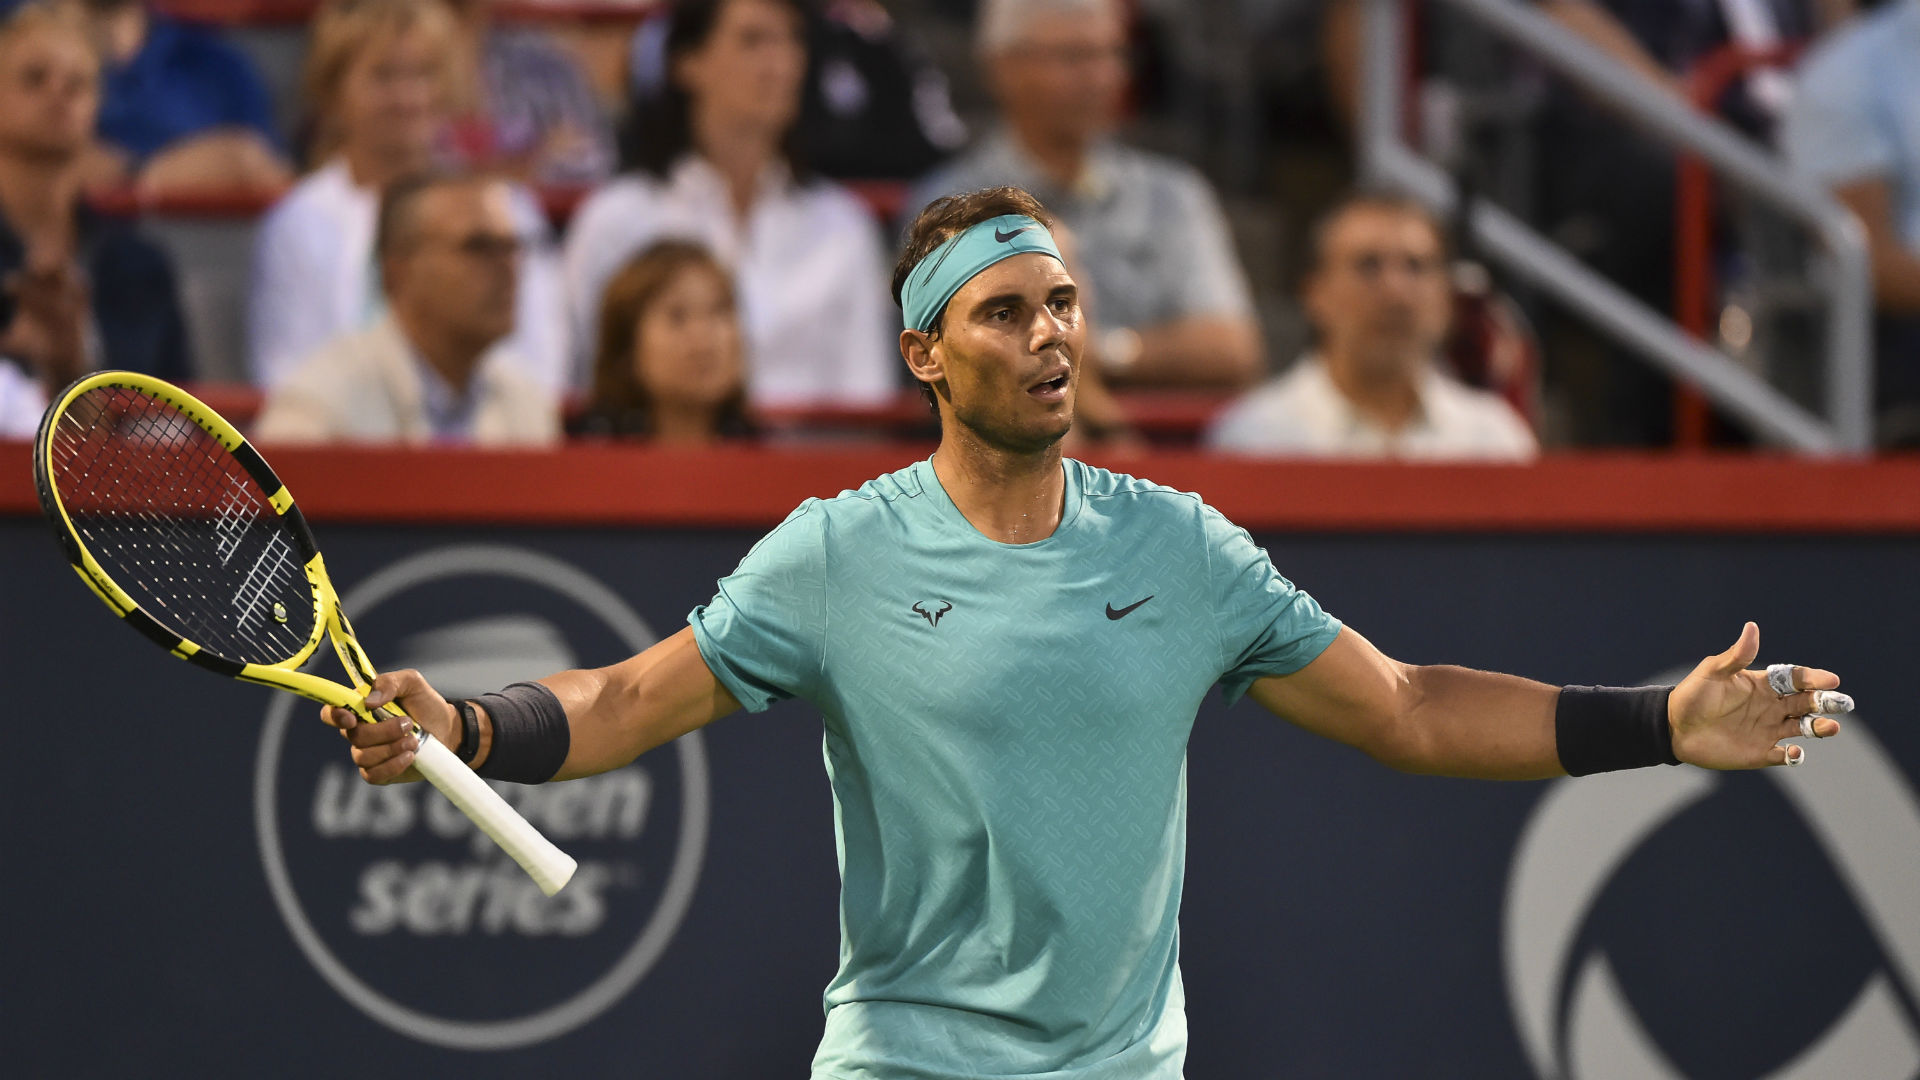 U.S. Open 2019: Draw is no advantage for Rafael Nadal